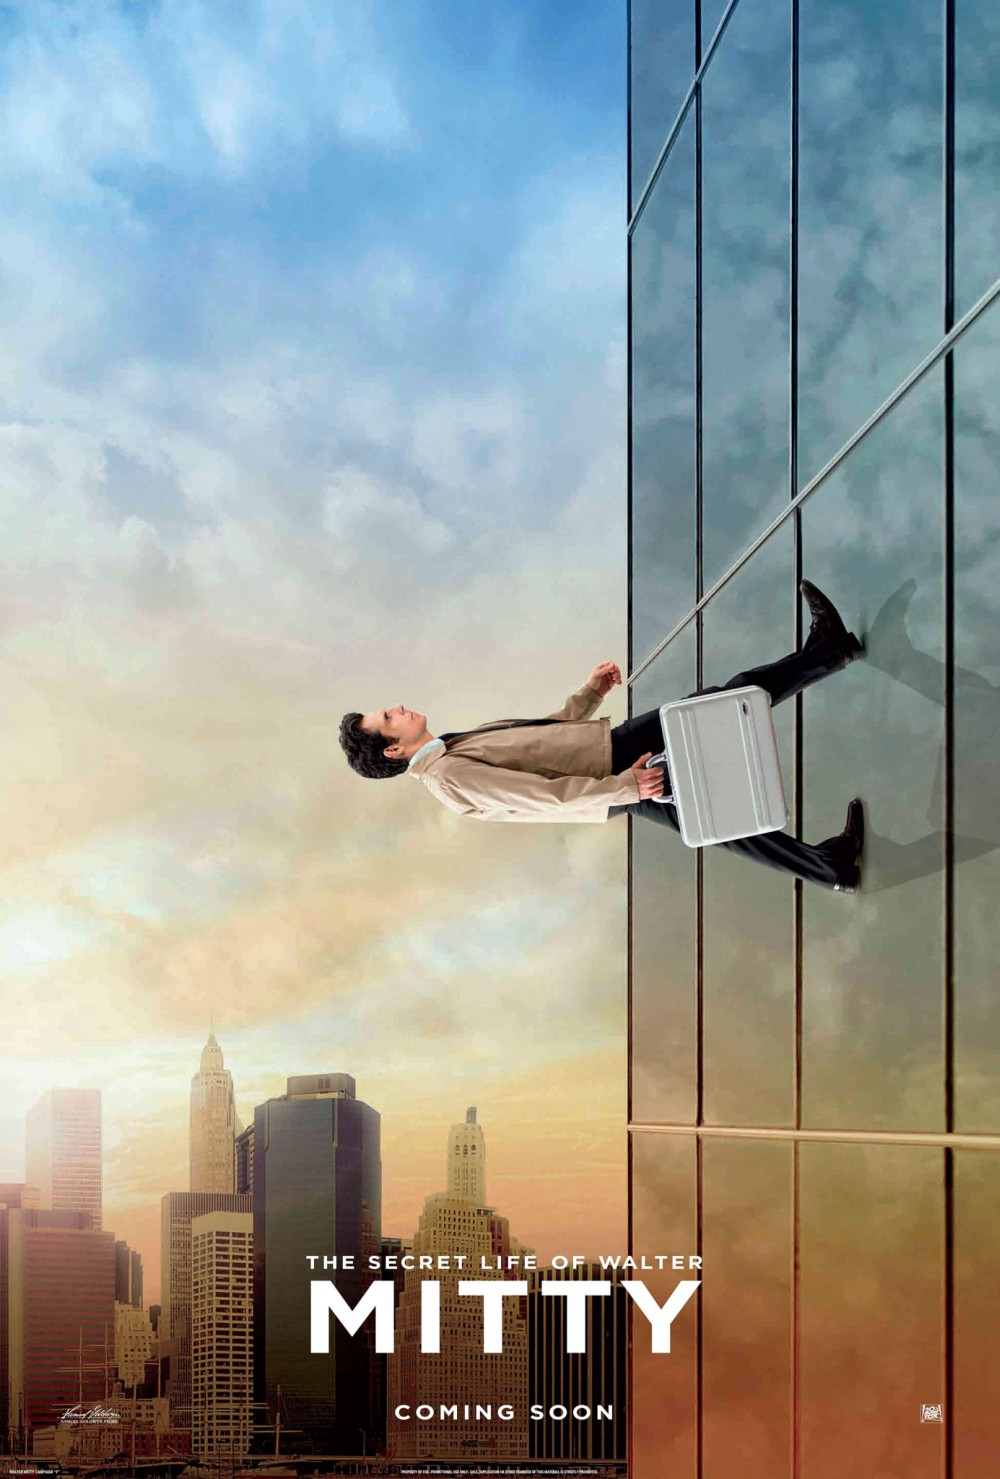 The-Secret-Life-of-Walter-Mitty-Poster-05.jpg